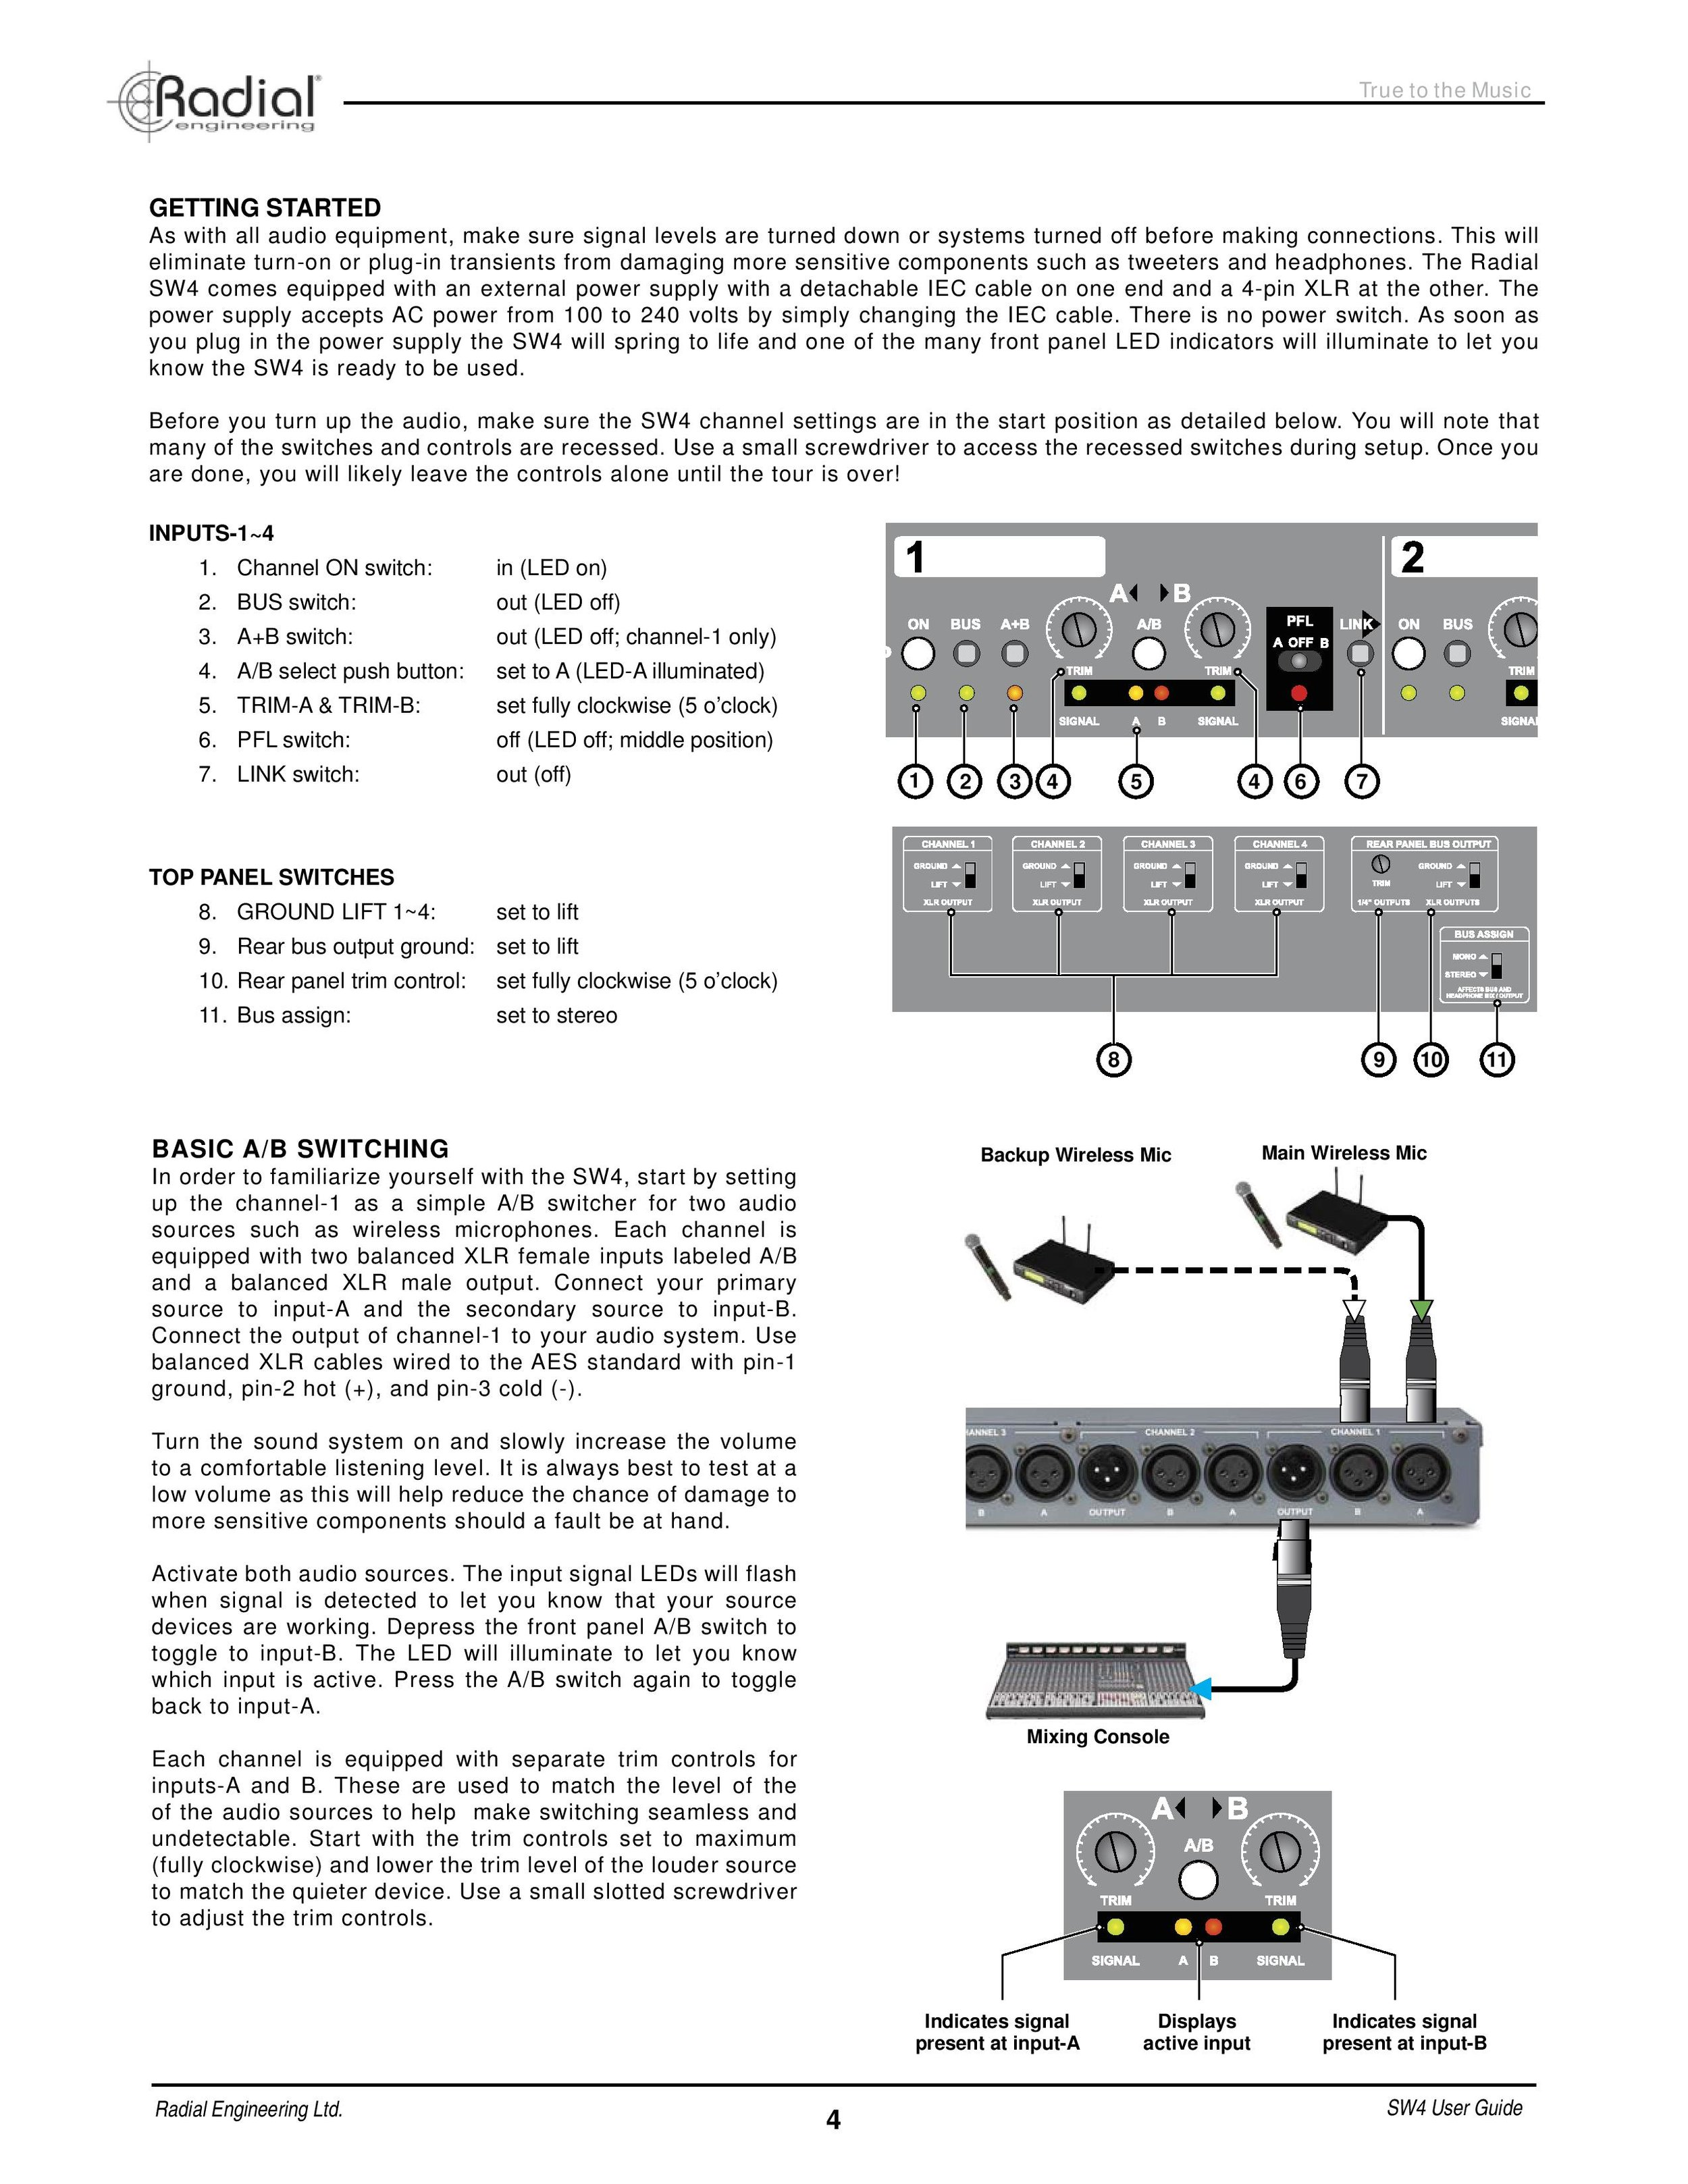 sw4-userguide-page-006.jpg